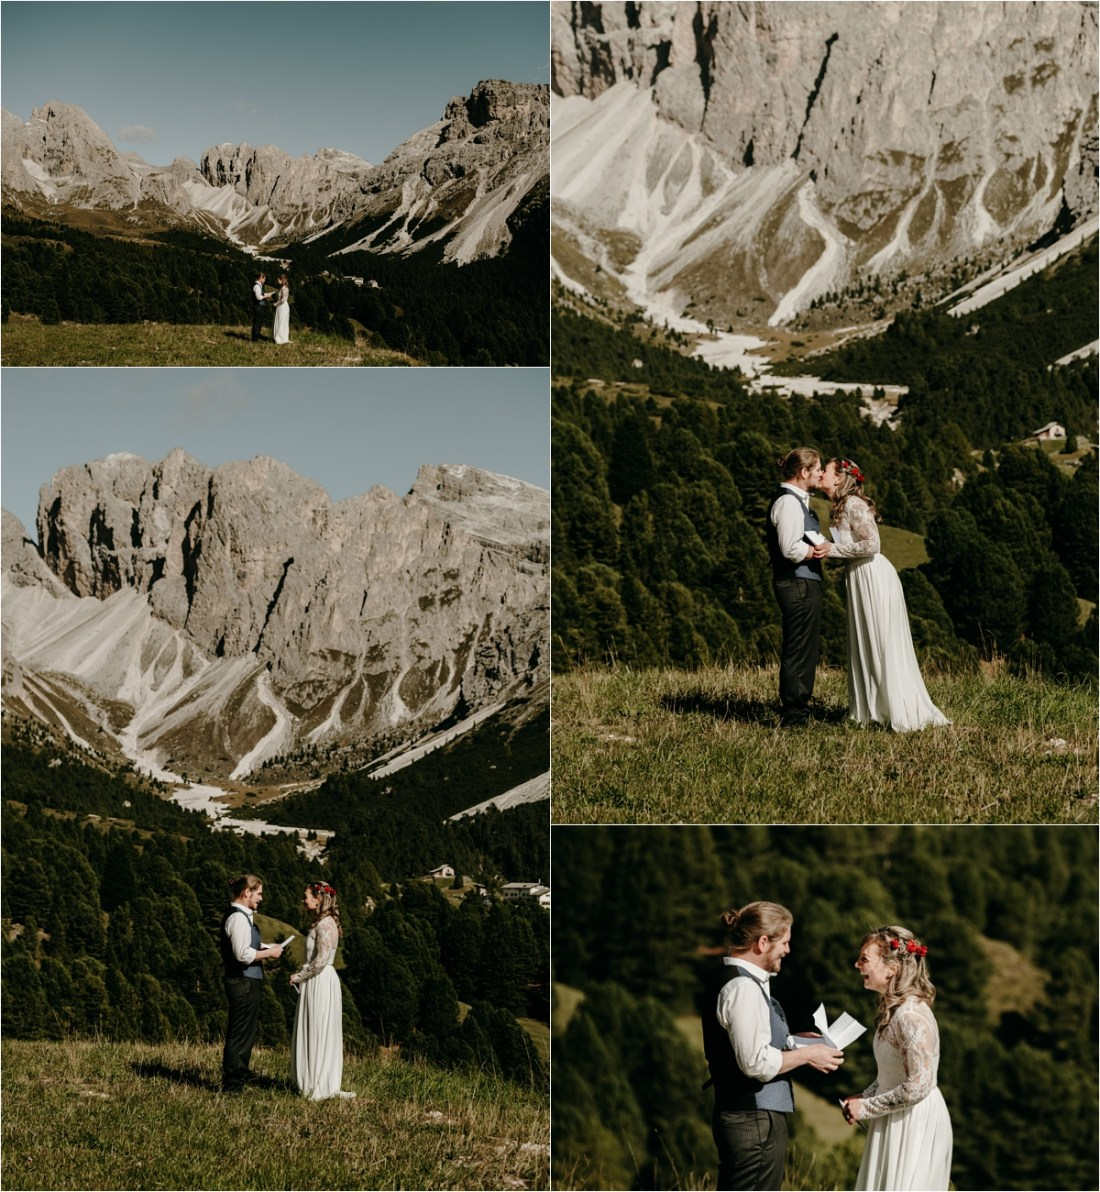 An elopement ceremony near Seceda in the Dolomites. Photos by Wild Connections Photography